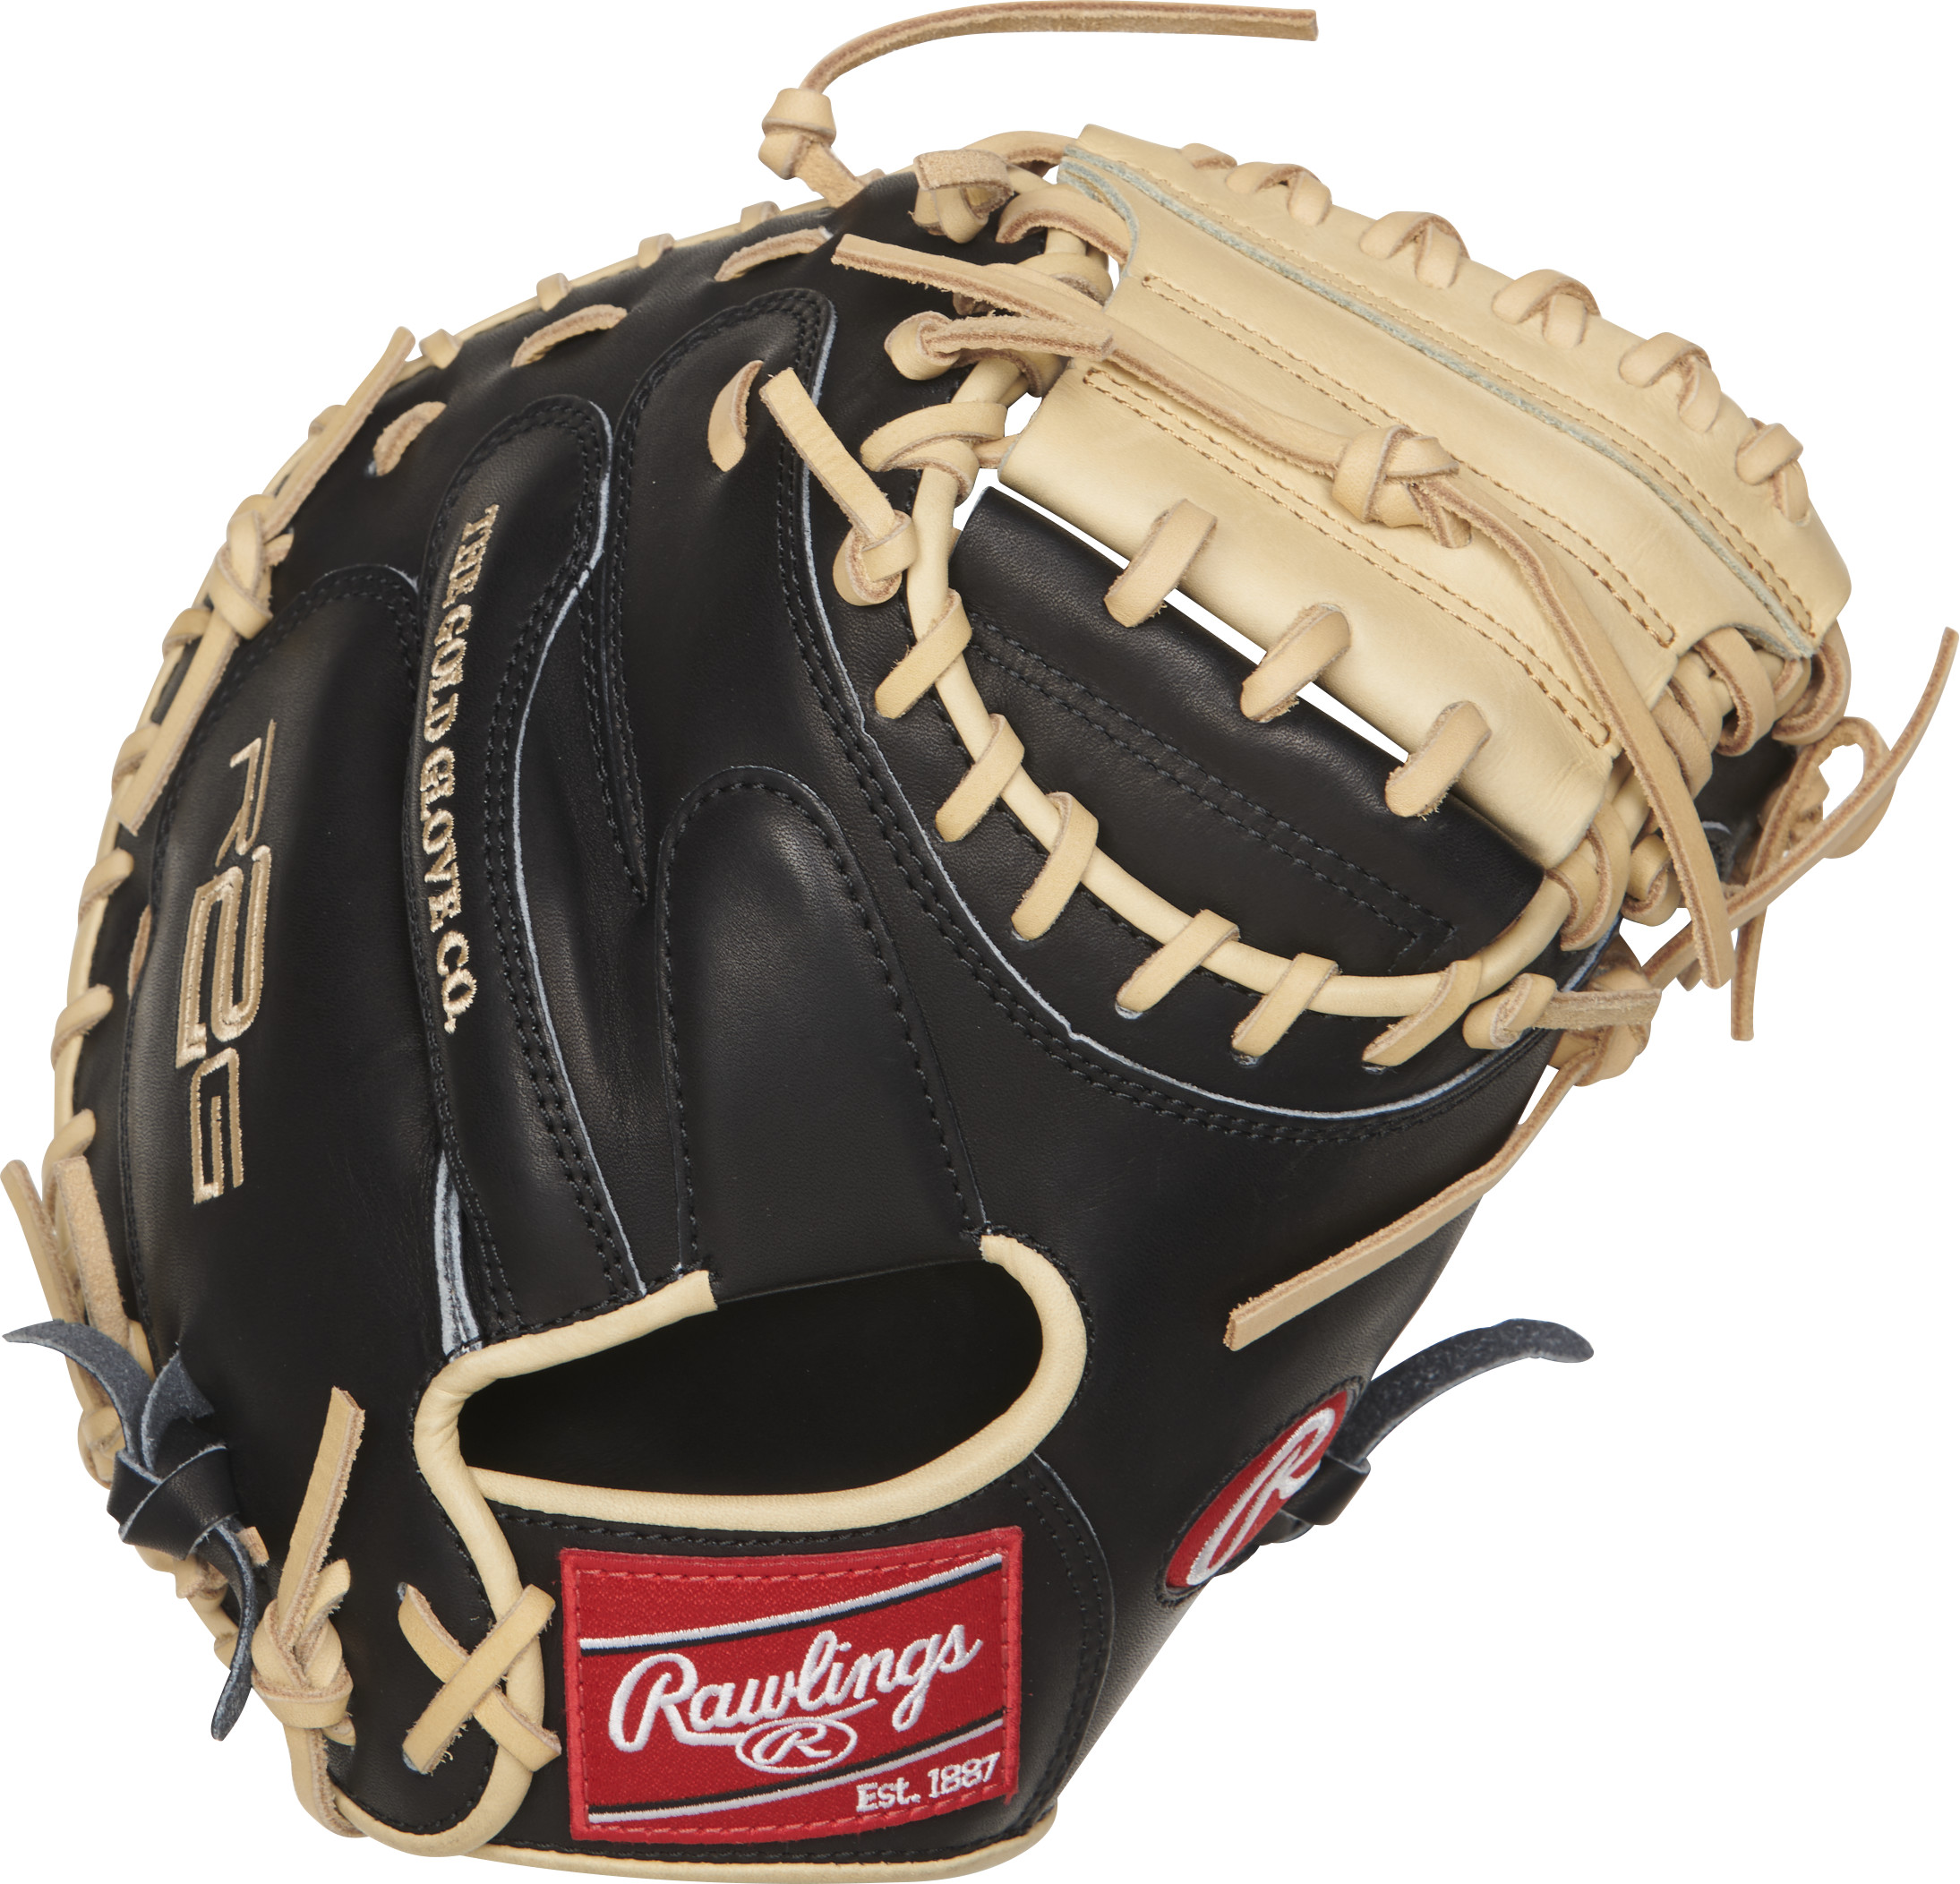 http://www.bestbatdeals.com/images/gloves/rawlings/PRORCM33-23BC-2.jpg